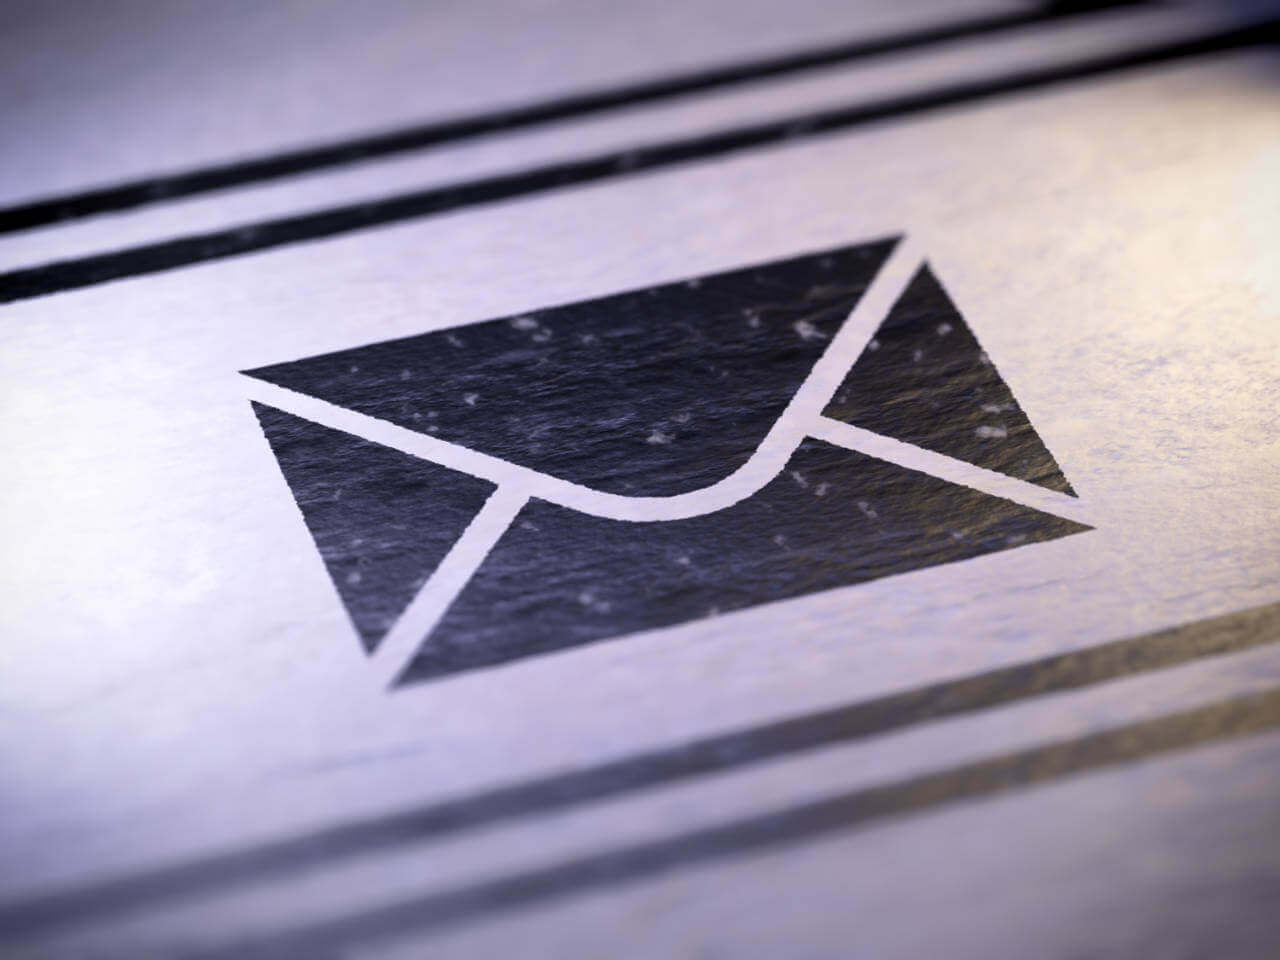 An image of an email icon